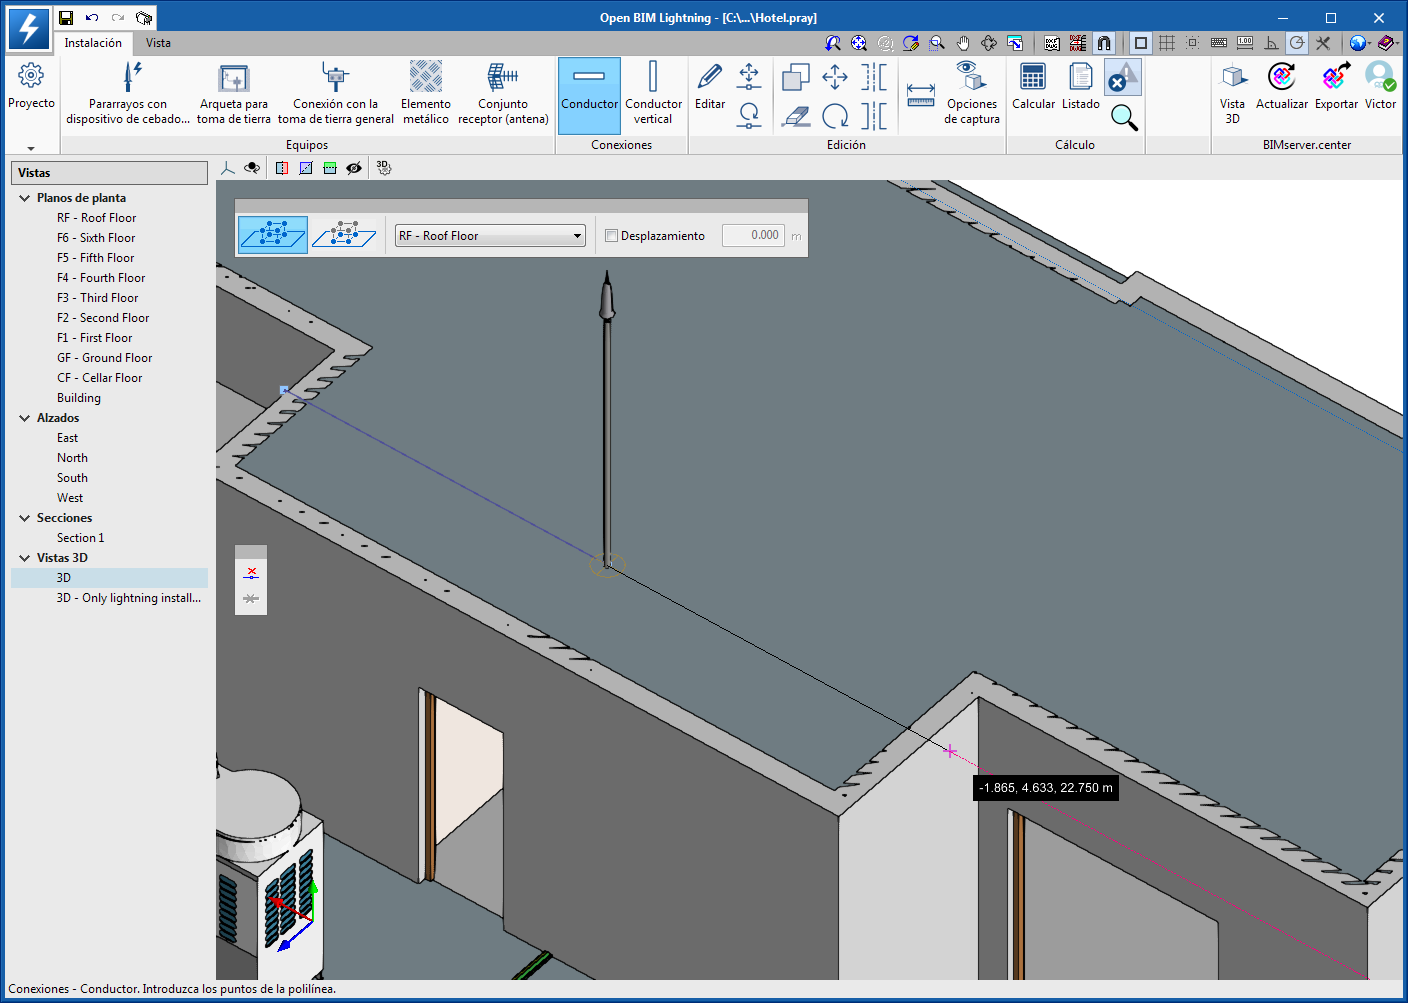 Open BIM Lightning. Improvements in the 3D environment of the application